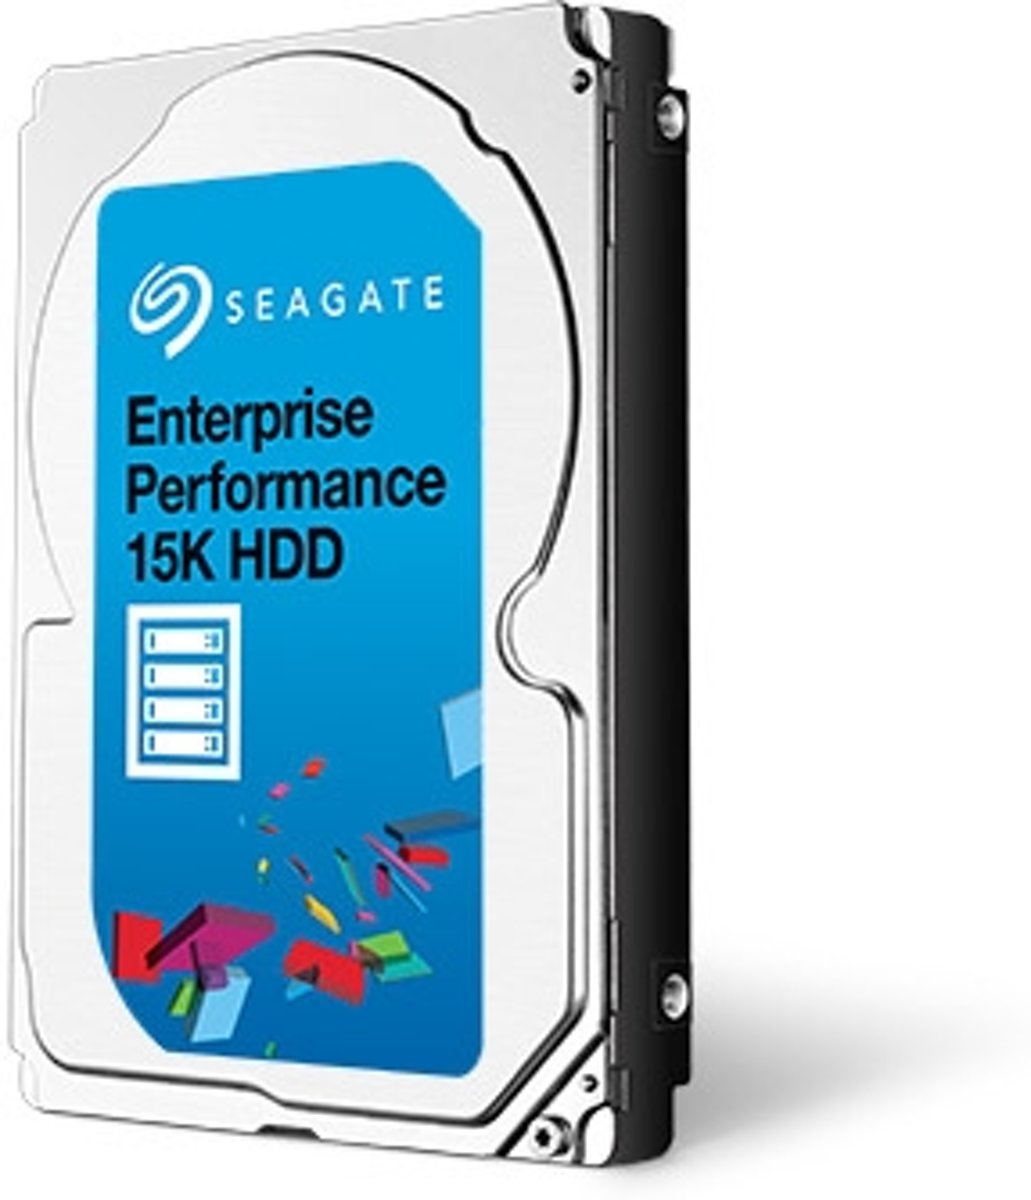 Seagate Enterprise Performance 15K - Interne harde schijf - 900 GB